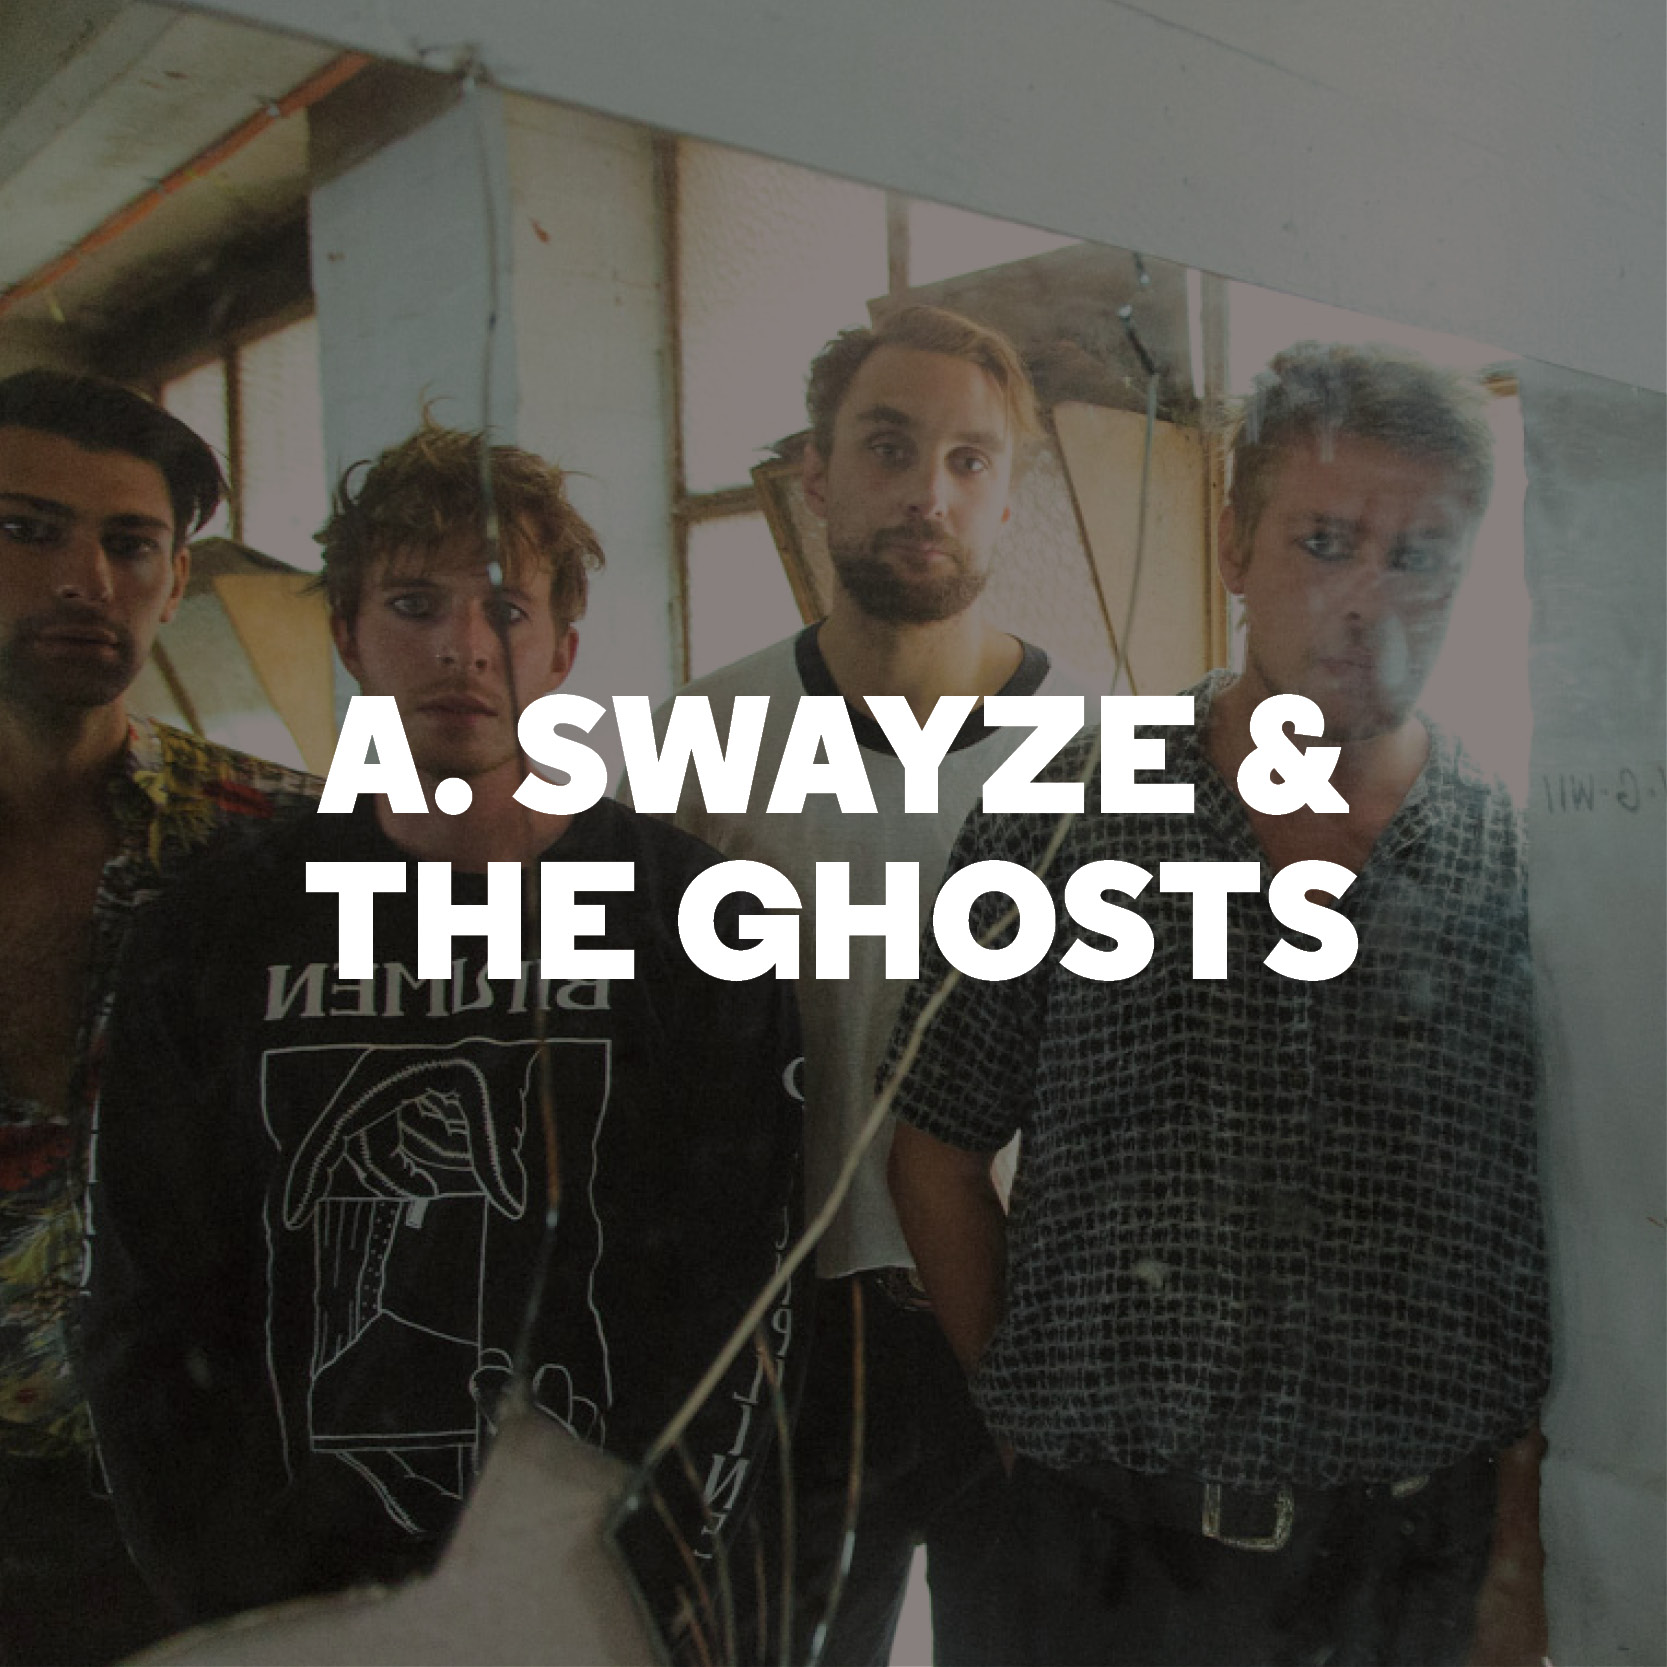 A. Swayze & The Ghosts